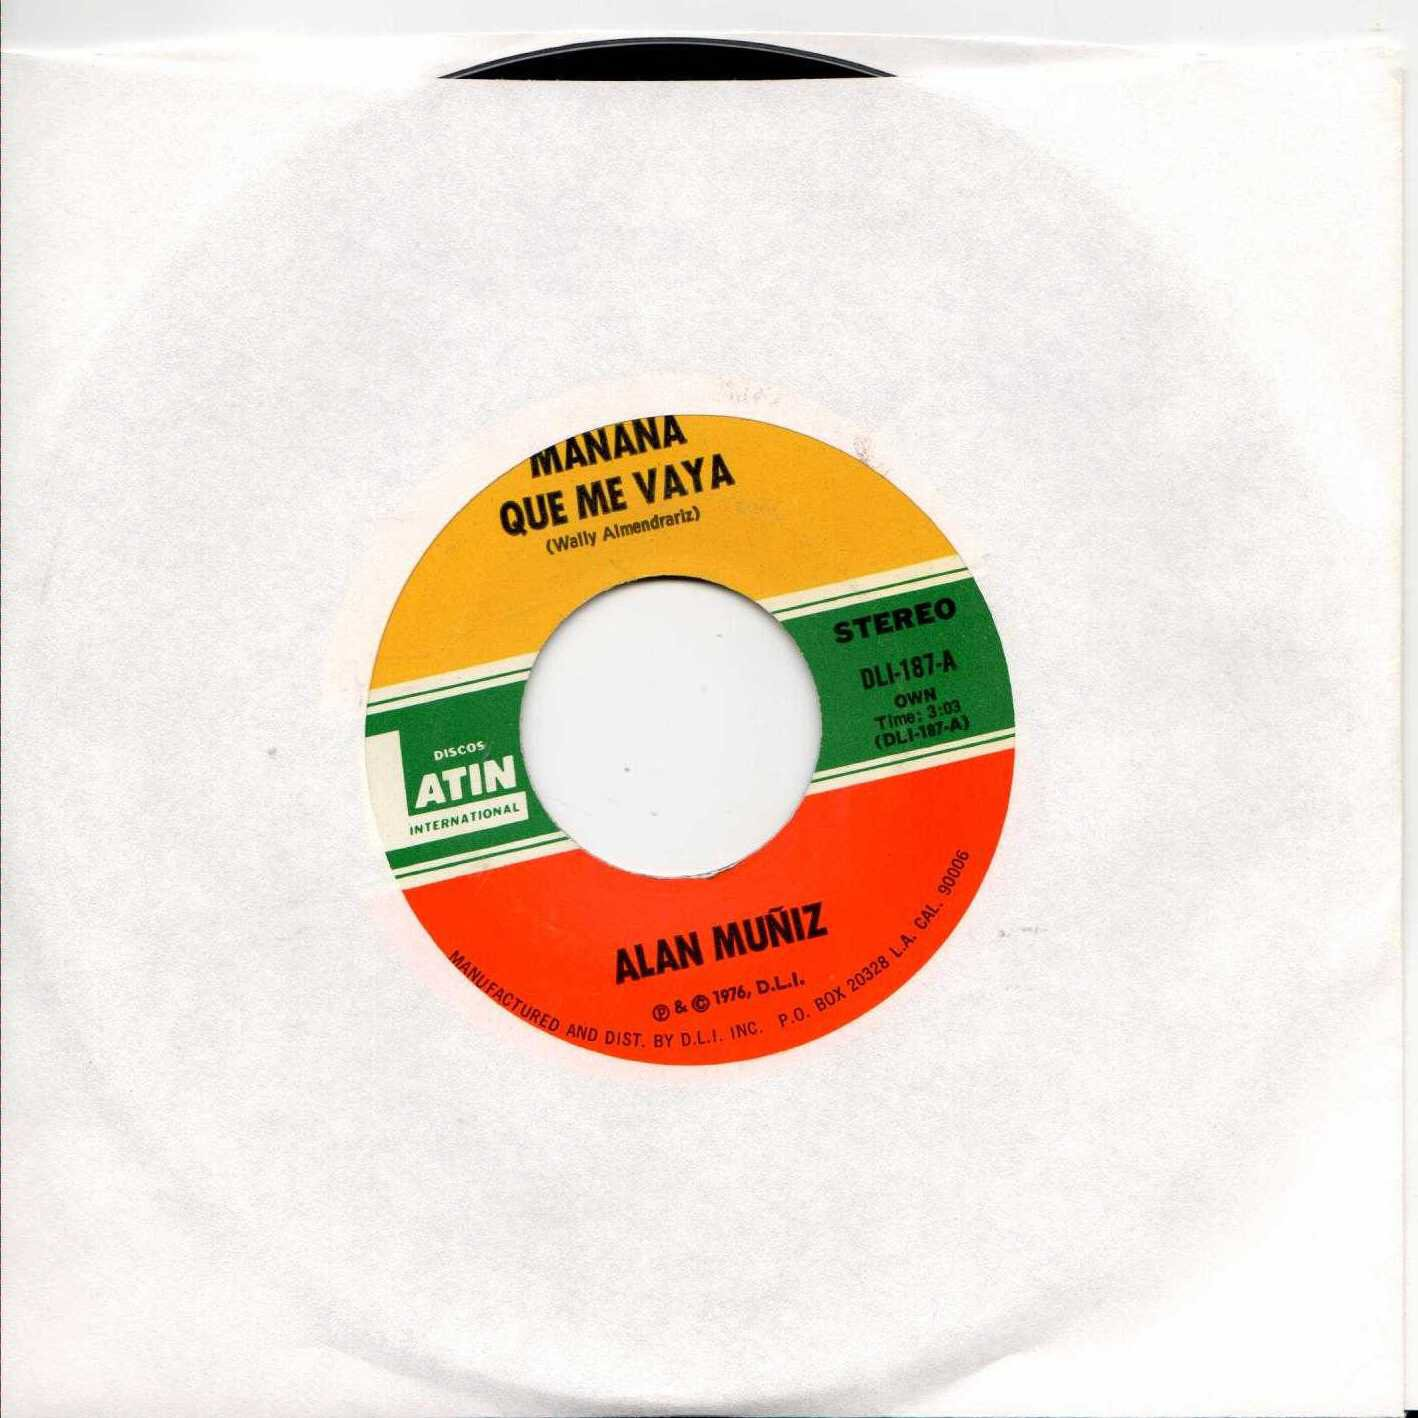 "ALAN MUNIZ Manana Que Me Vaya 1976 US 2 Track 7"" Vinyl Single"